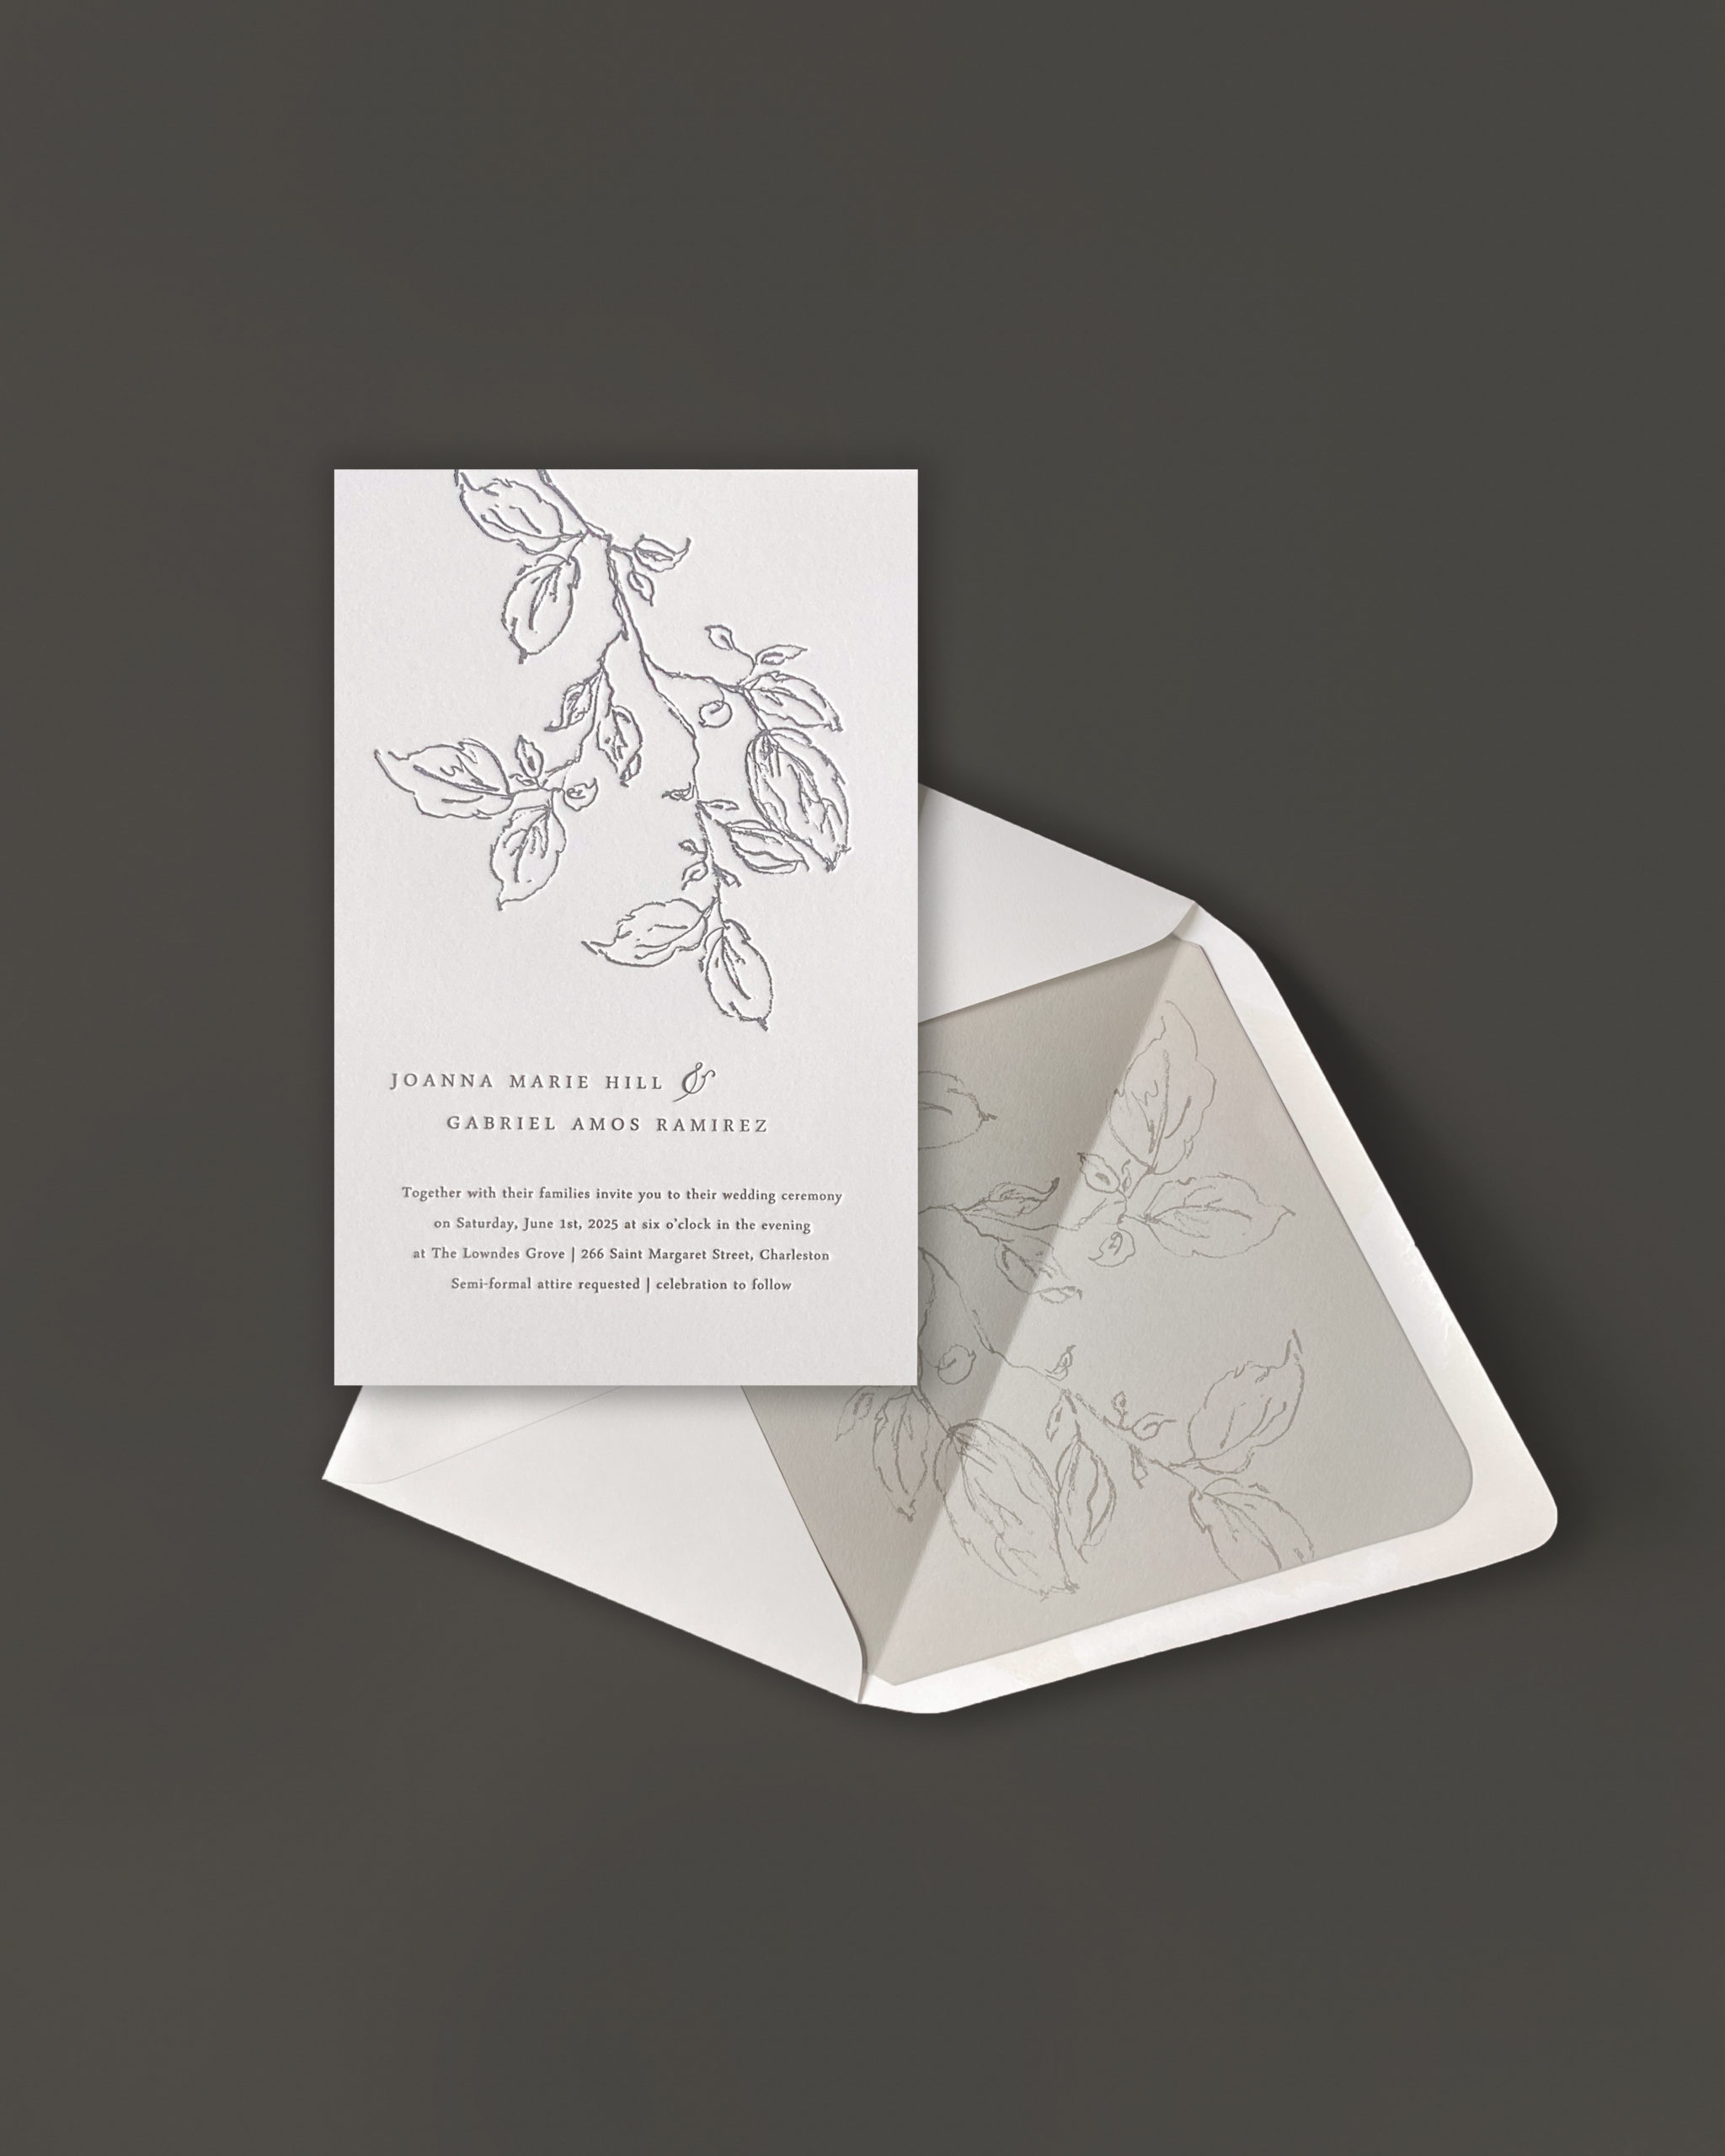 dramatic floral sketch cascades down from the top of this stunning, modern  letterpress wedding invitation.  Shown in earth tones, but available in any color scheme, this invitation is sure to wow your guests.  Available in the Washington DC area at Staccato.